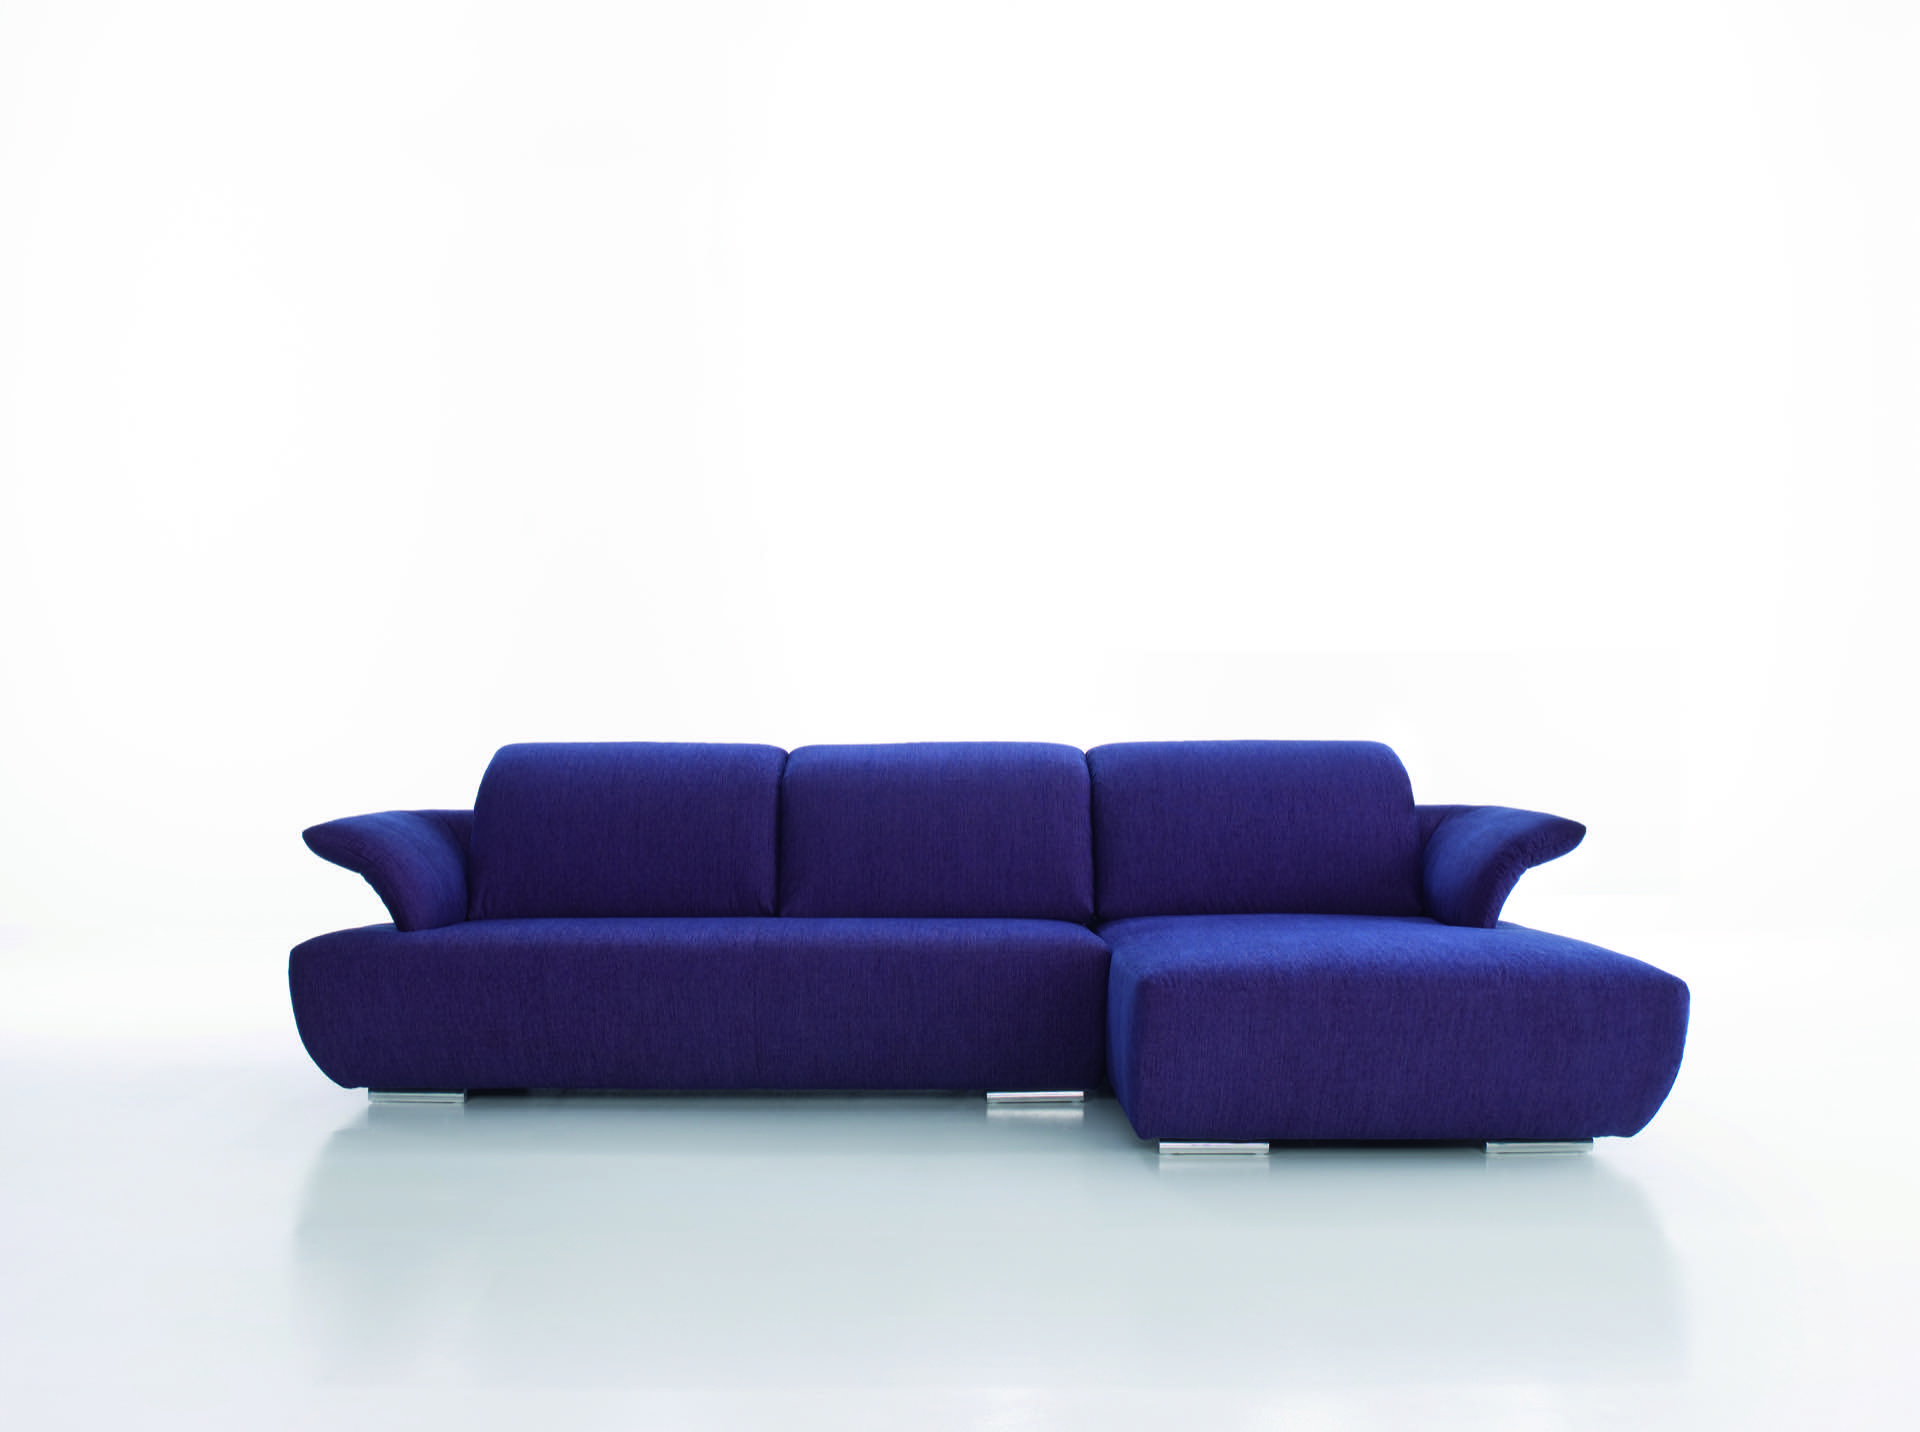 couch ecke beautiful couchecke mit cm breit with couch. Black Bedroom Furniture Sets. Home Design Ideas